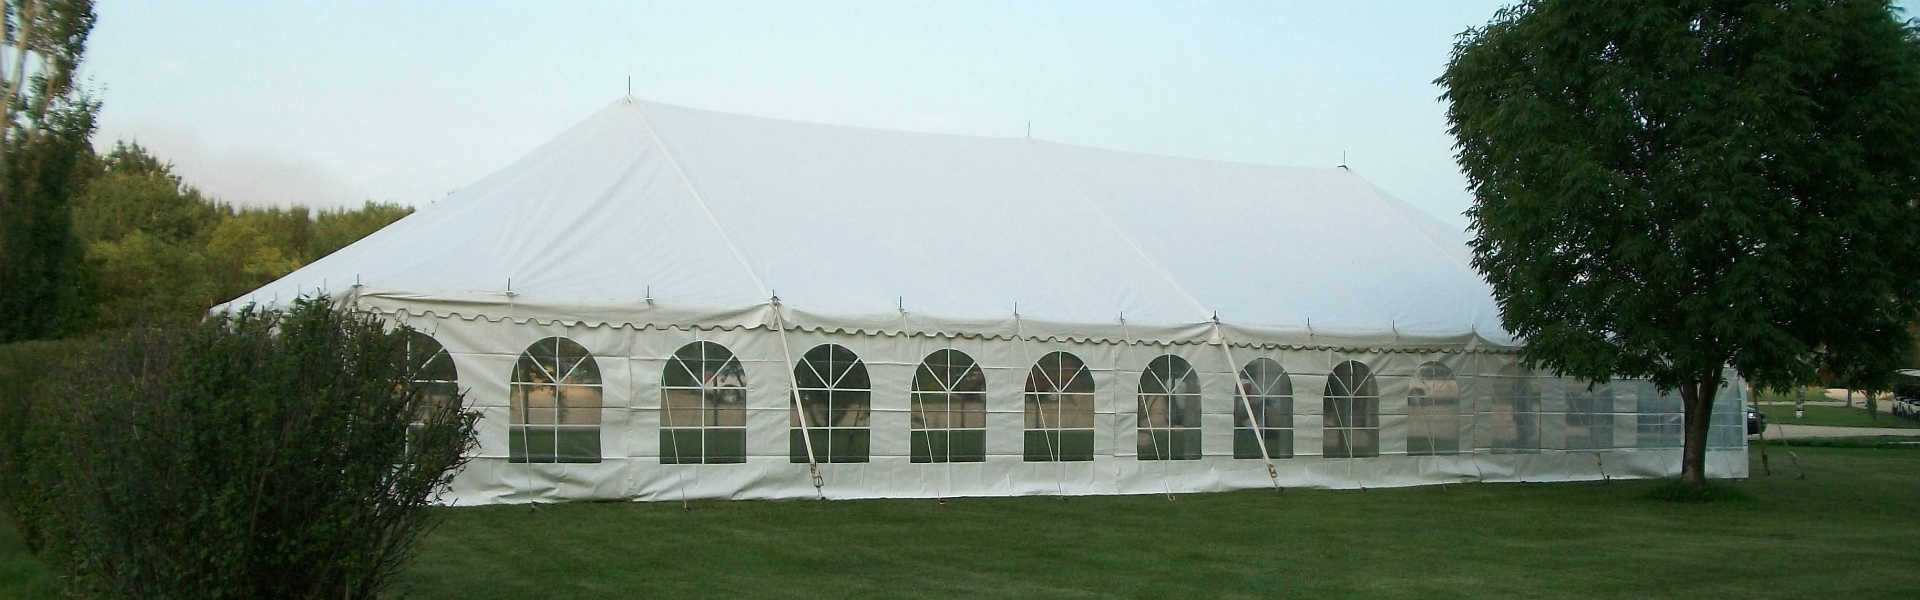 The best tents for your <strong>parties and events!</strong>